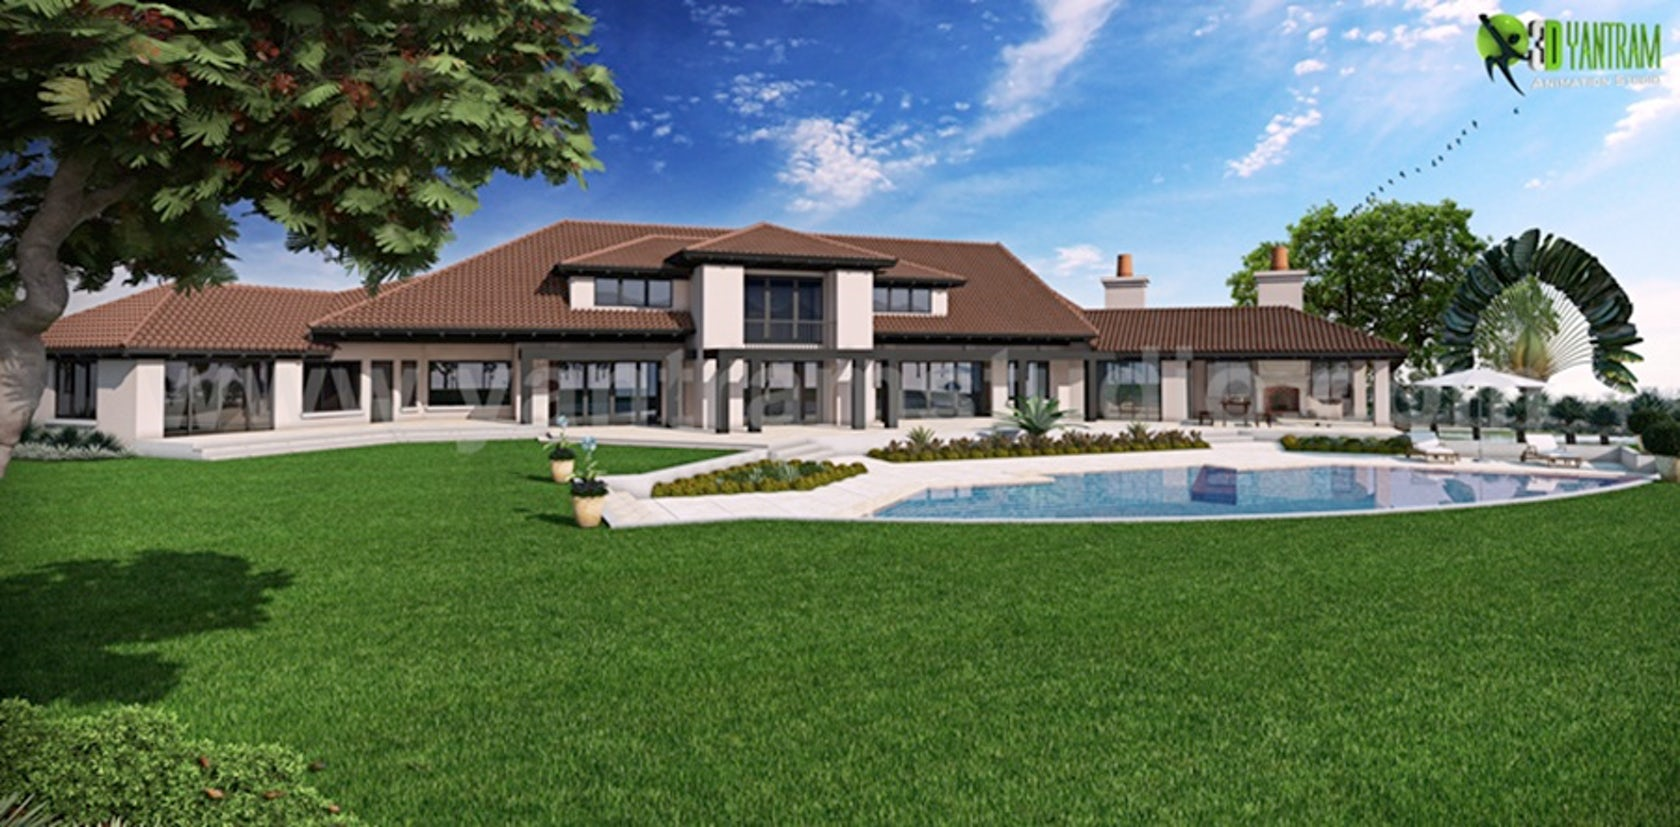 Exterior: Dream House Residential 3D Rendering Front & Back View